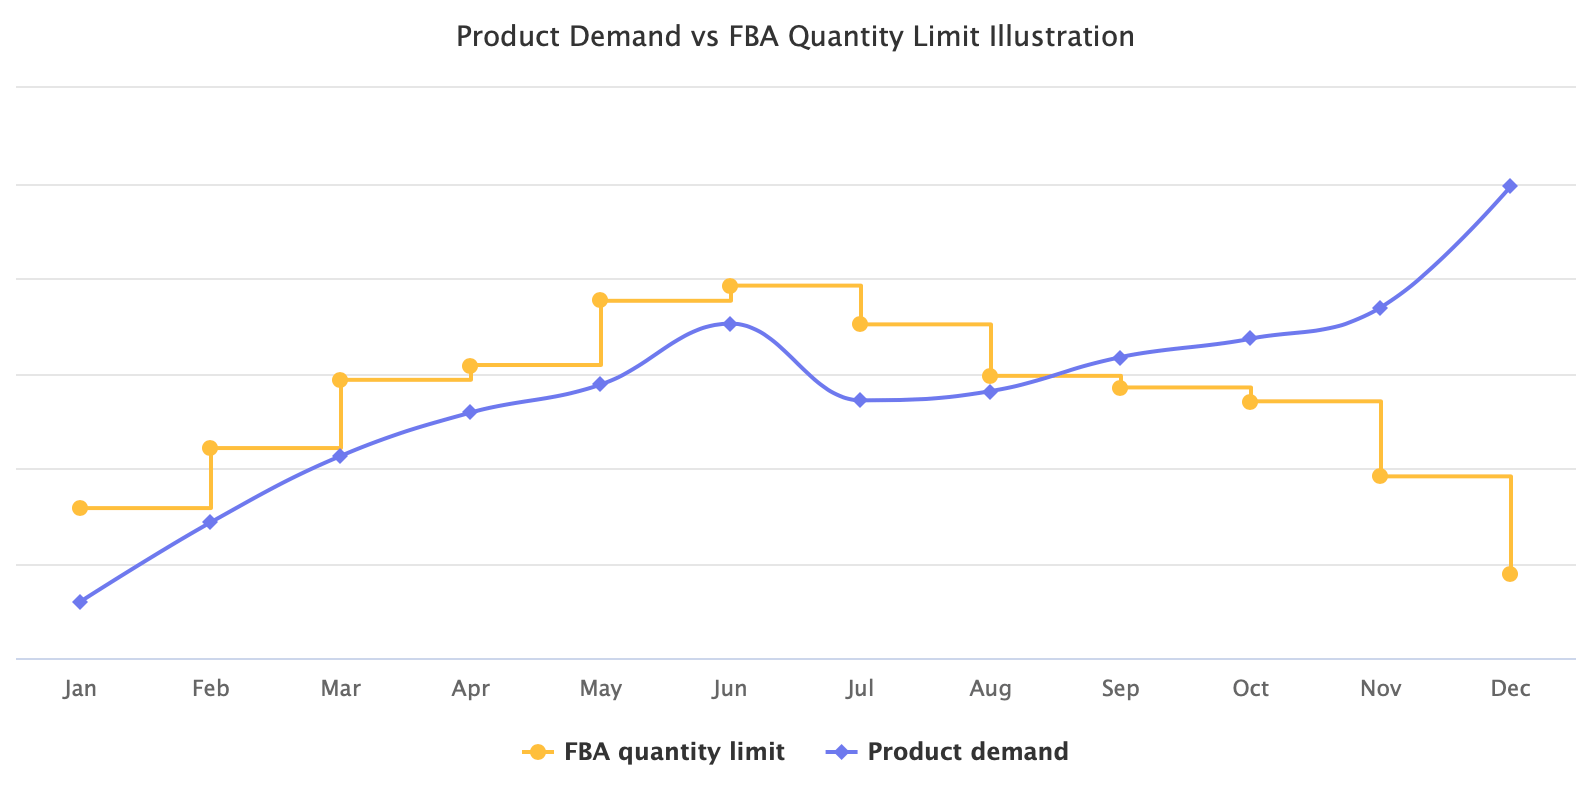 Product Demand vs FBA Quantity Limit Illustration